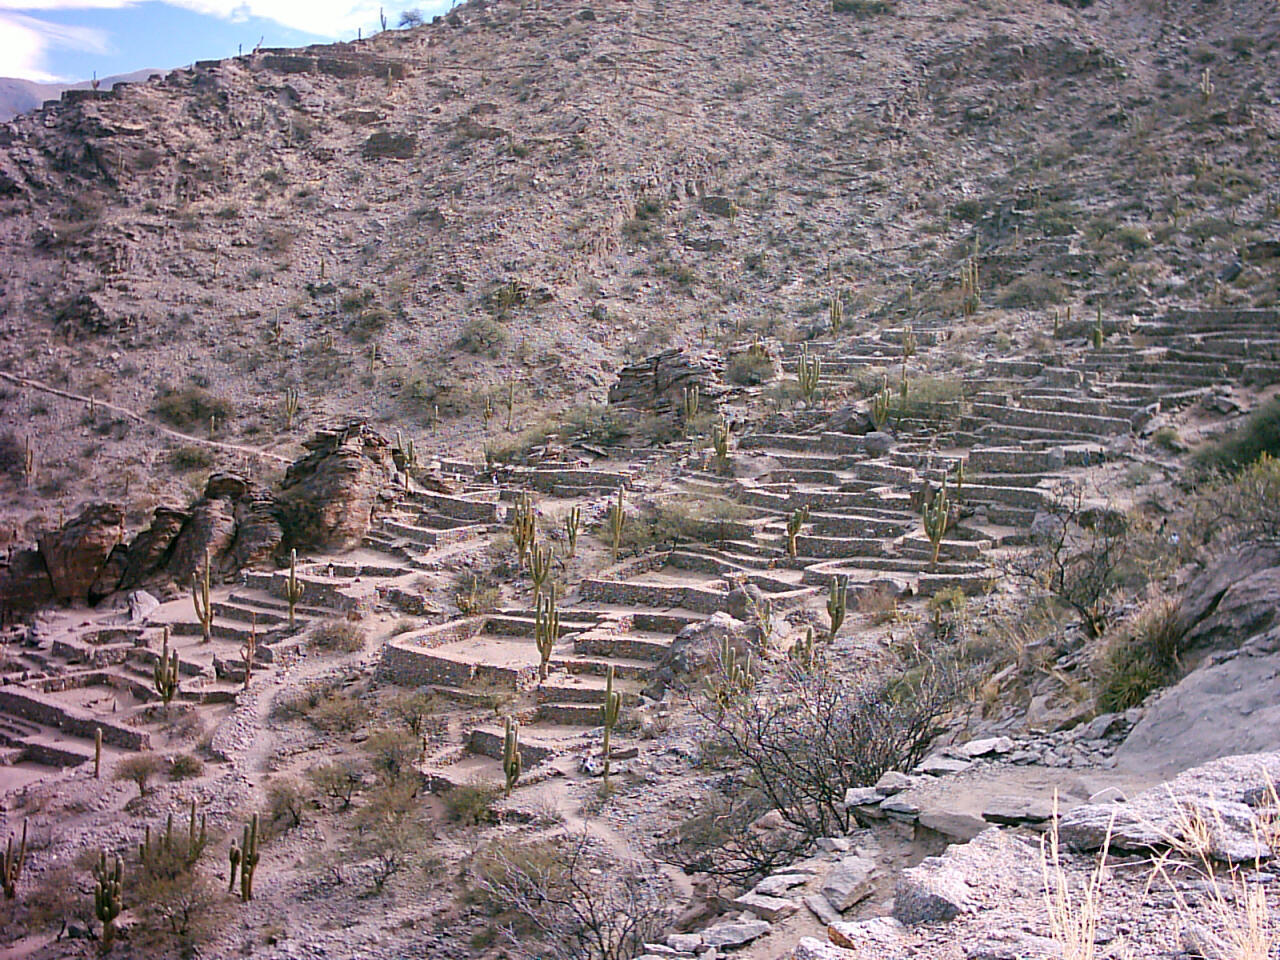 Ruins of Quilmes is an archaeological site in the Calchaquí Valleys, Tucumán Province, Argentina.